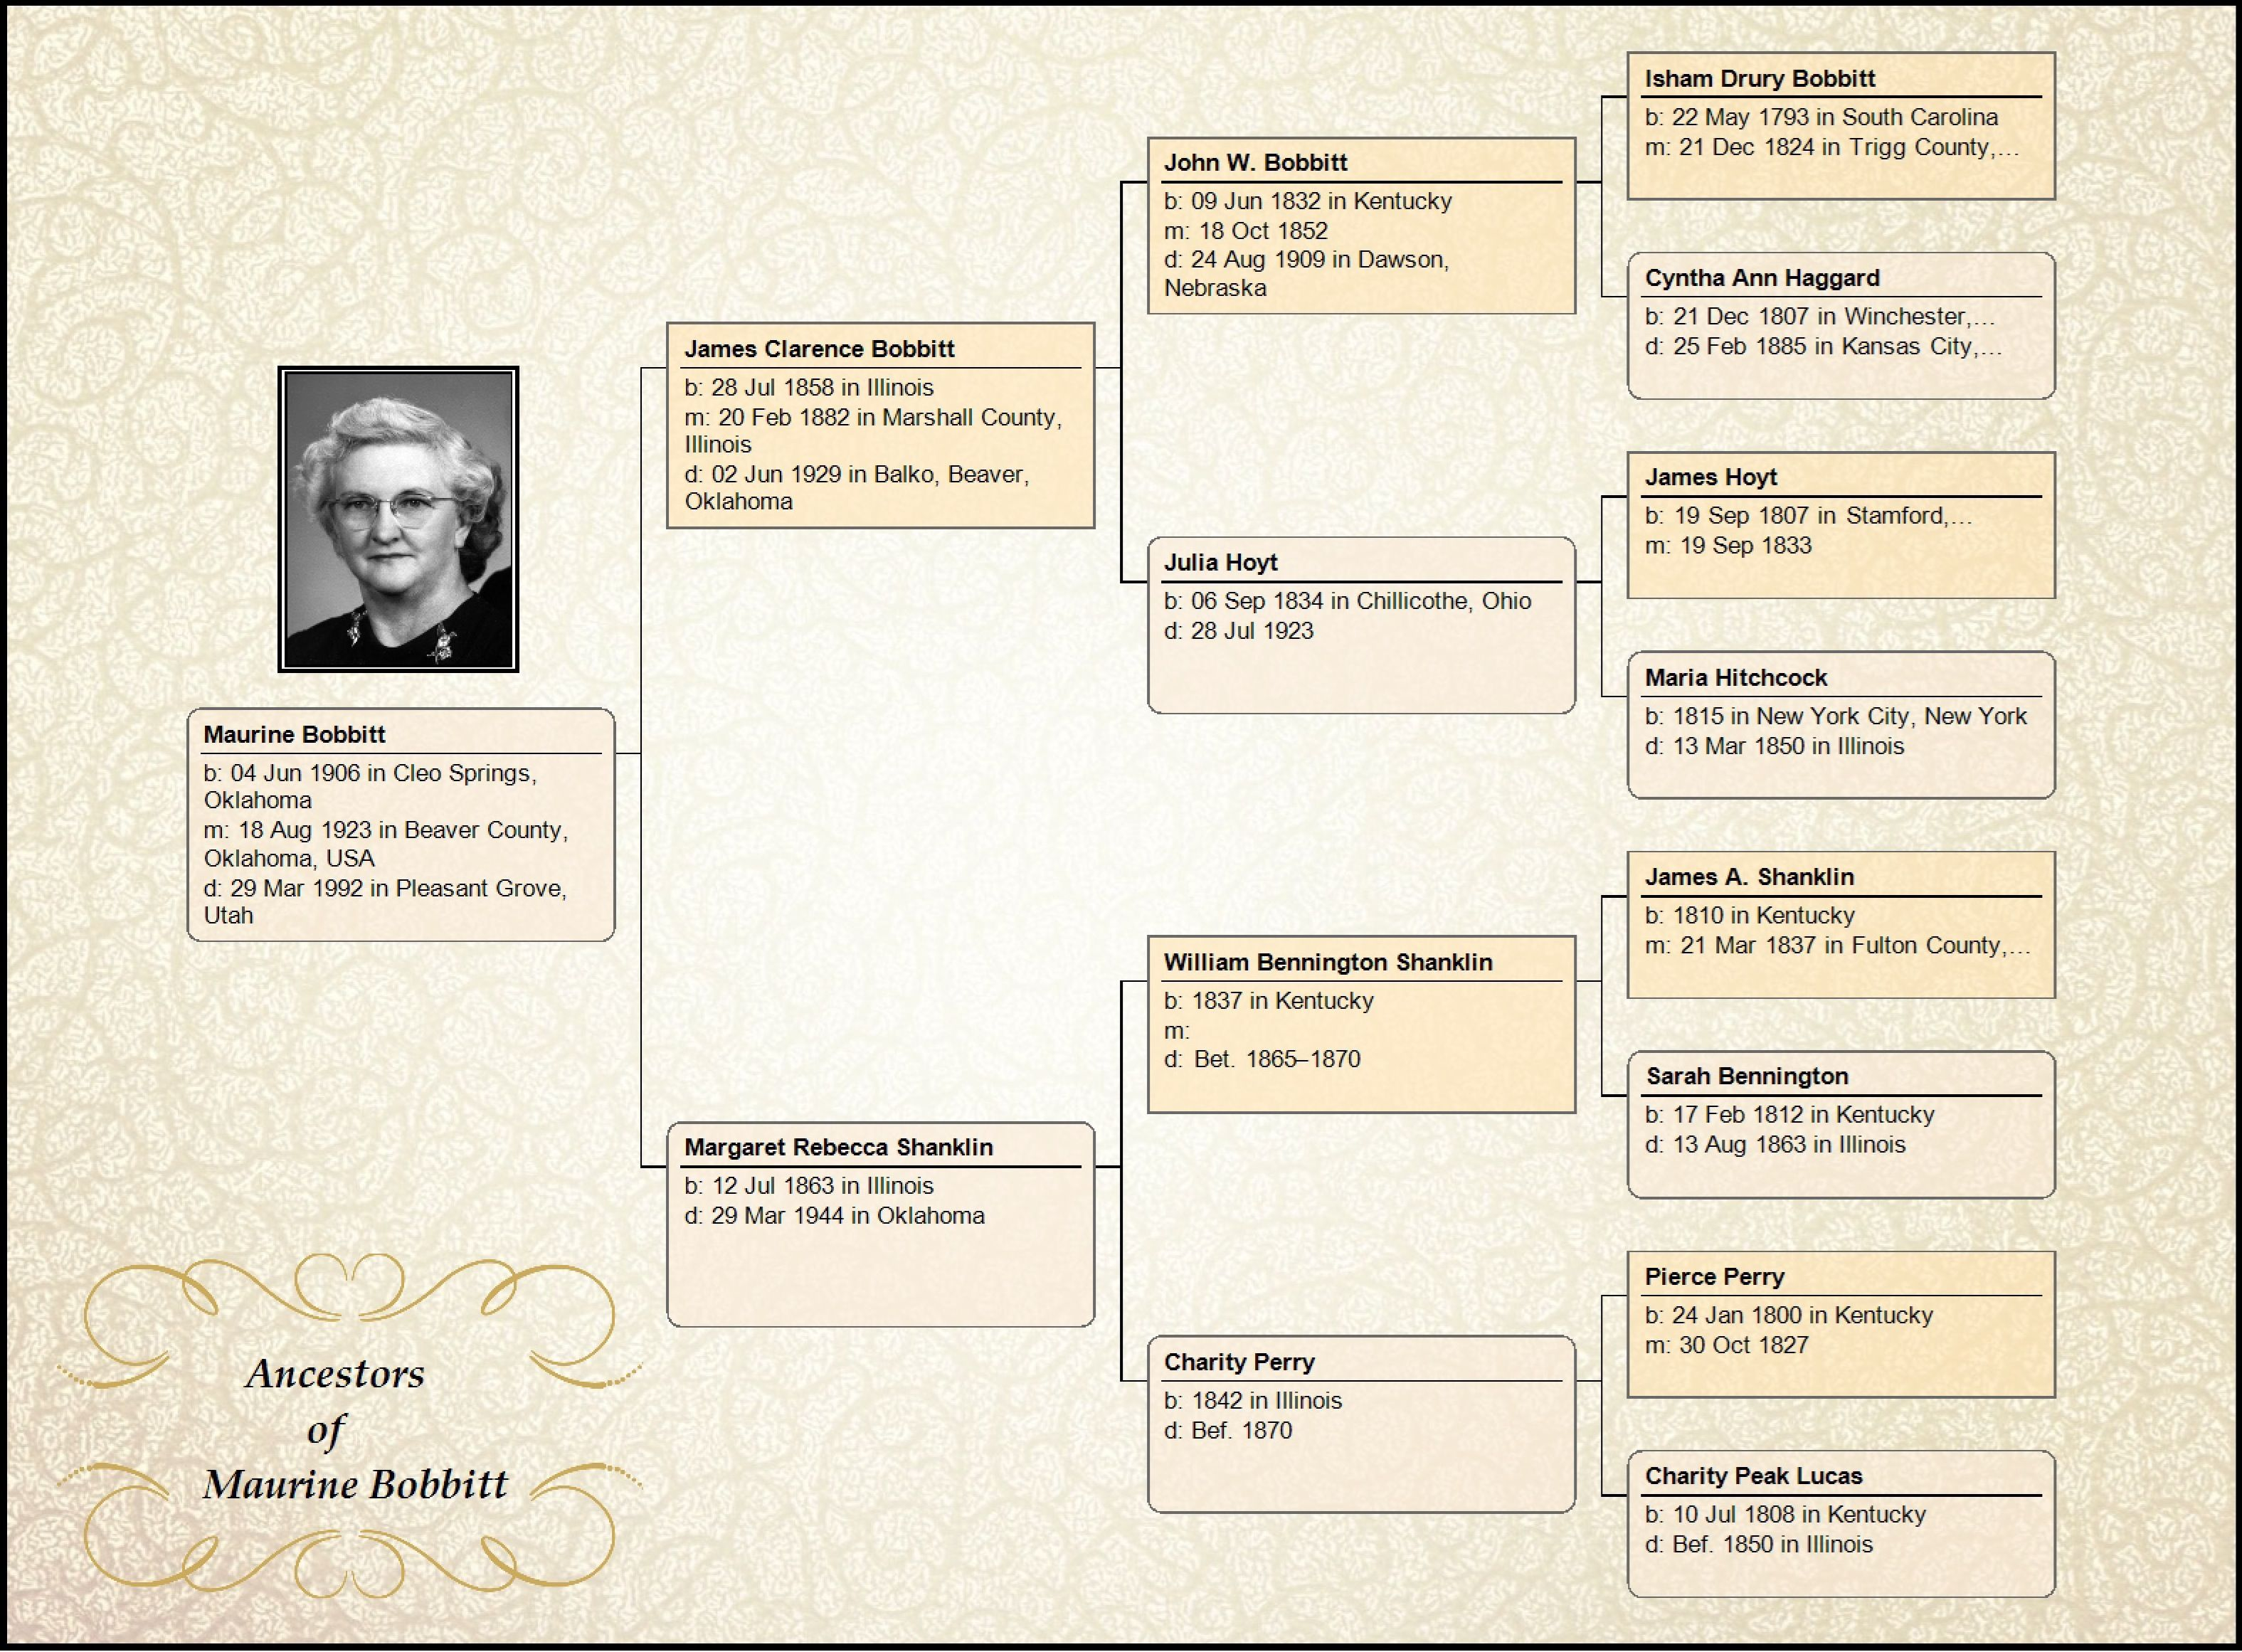 1000+ images about family tree maker free on Pinterest | Plugs ...